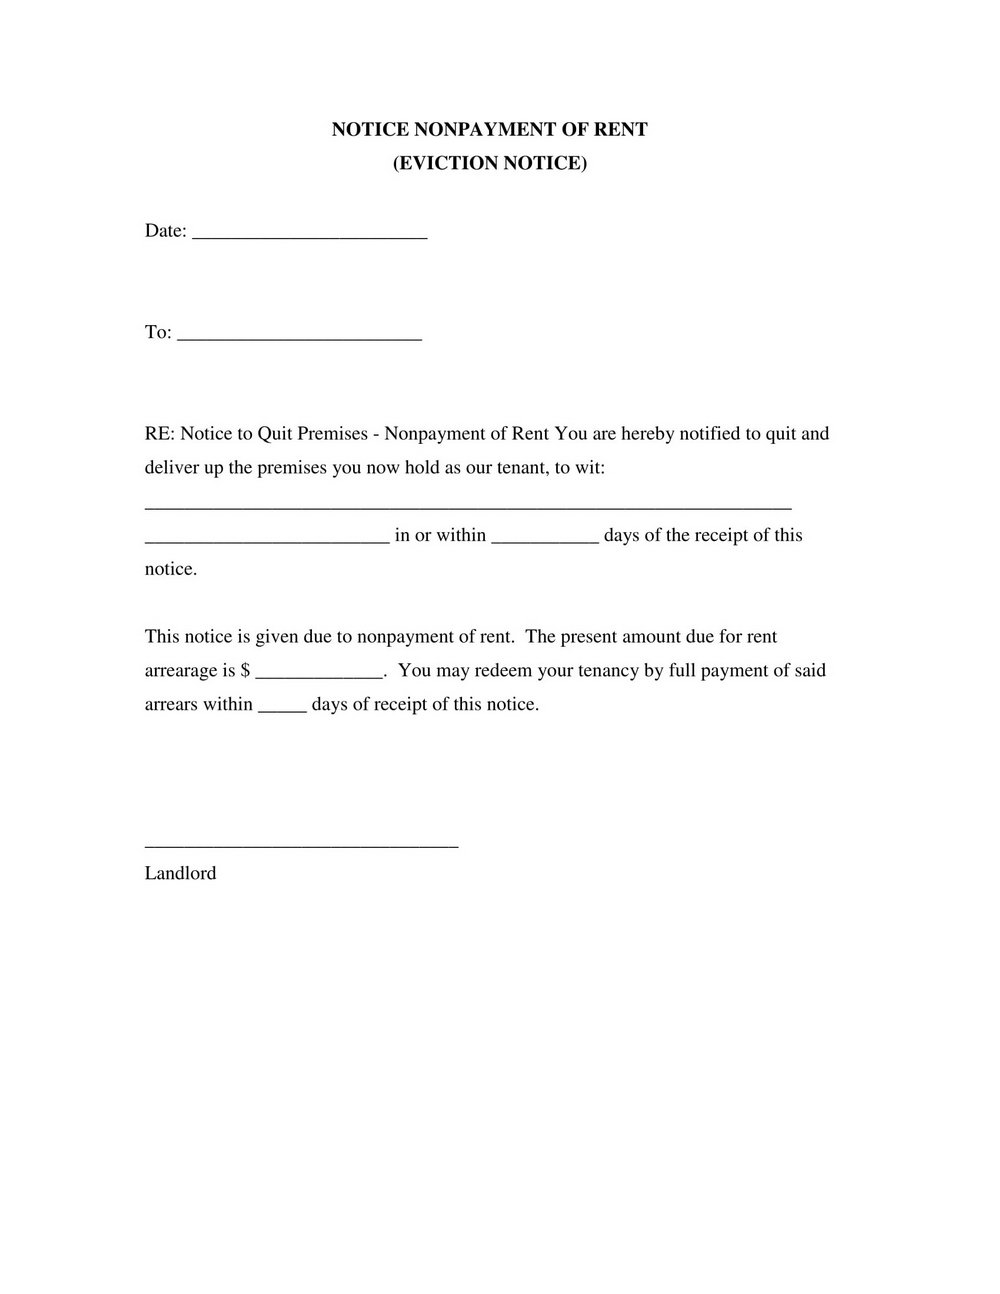 Legal Eviction Notice Form